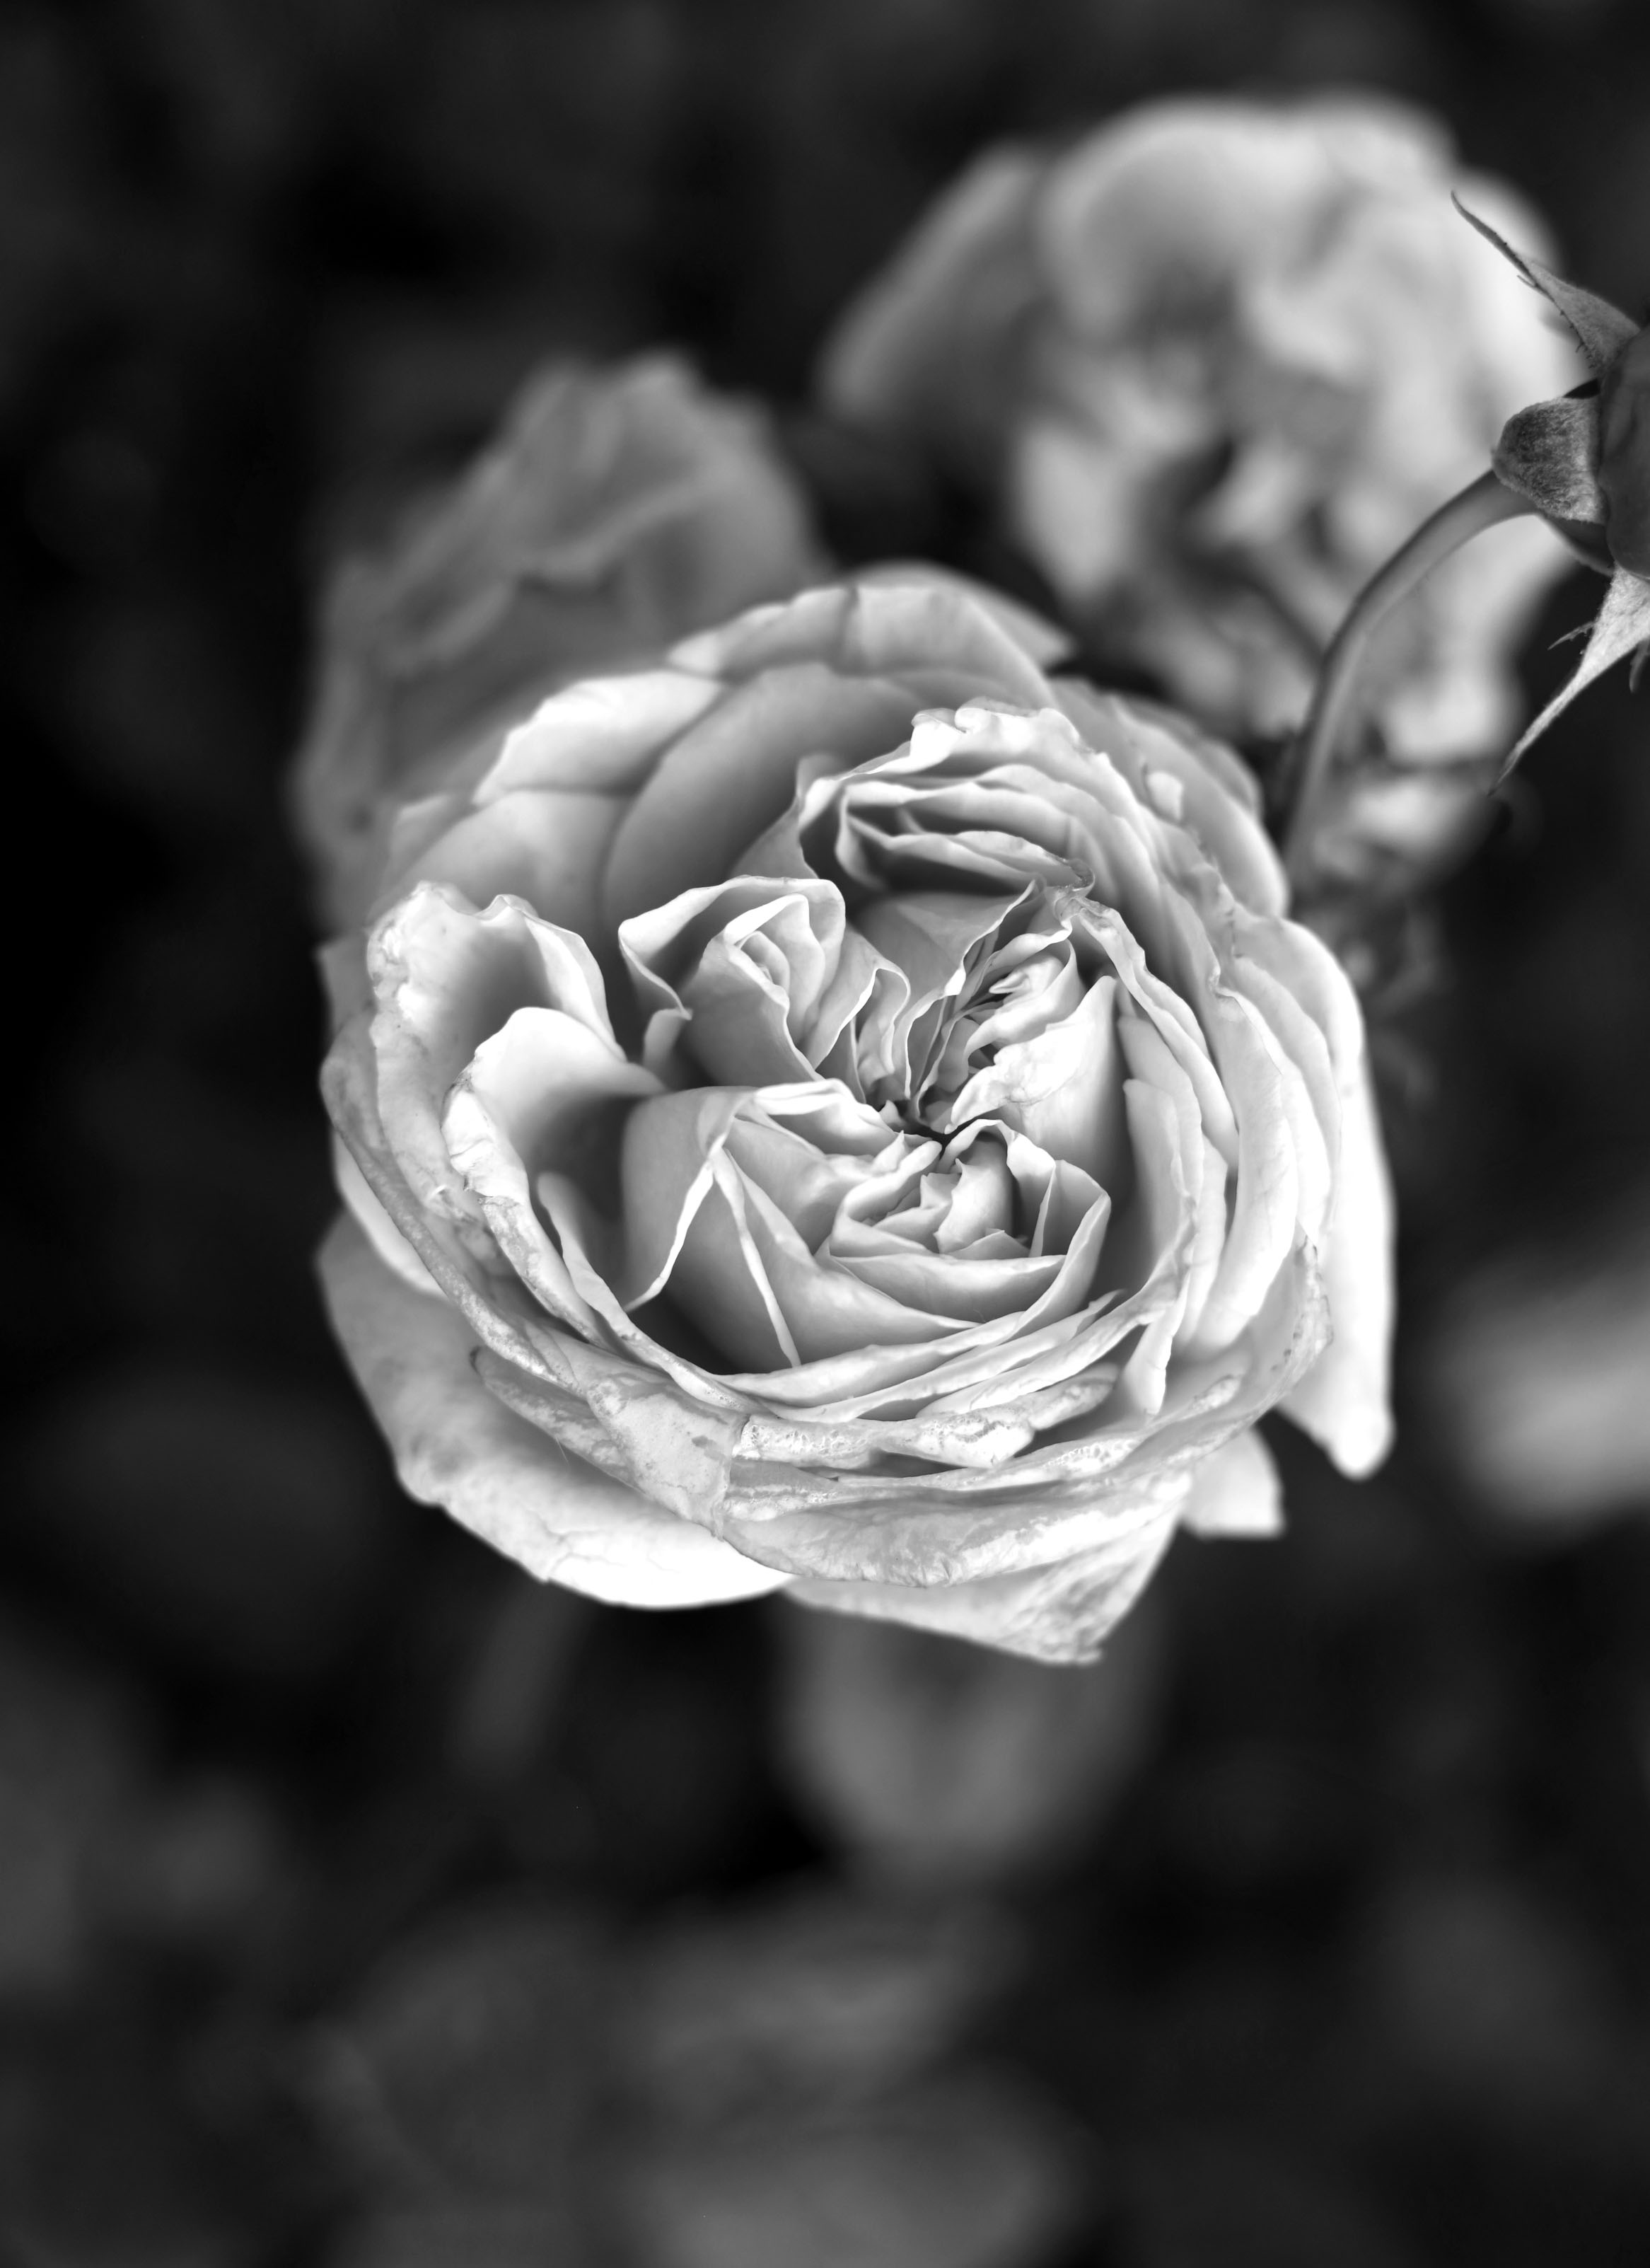 Black & White Rose